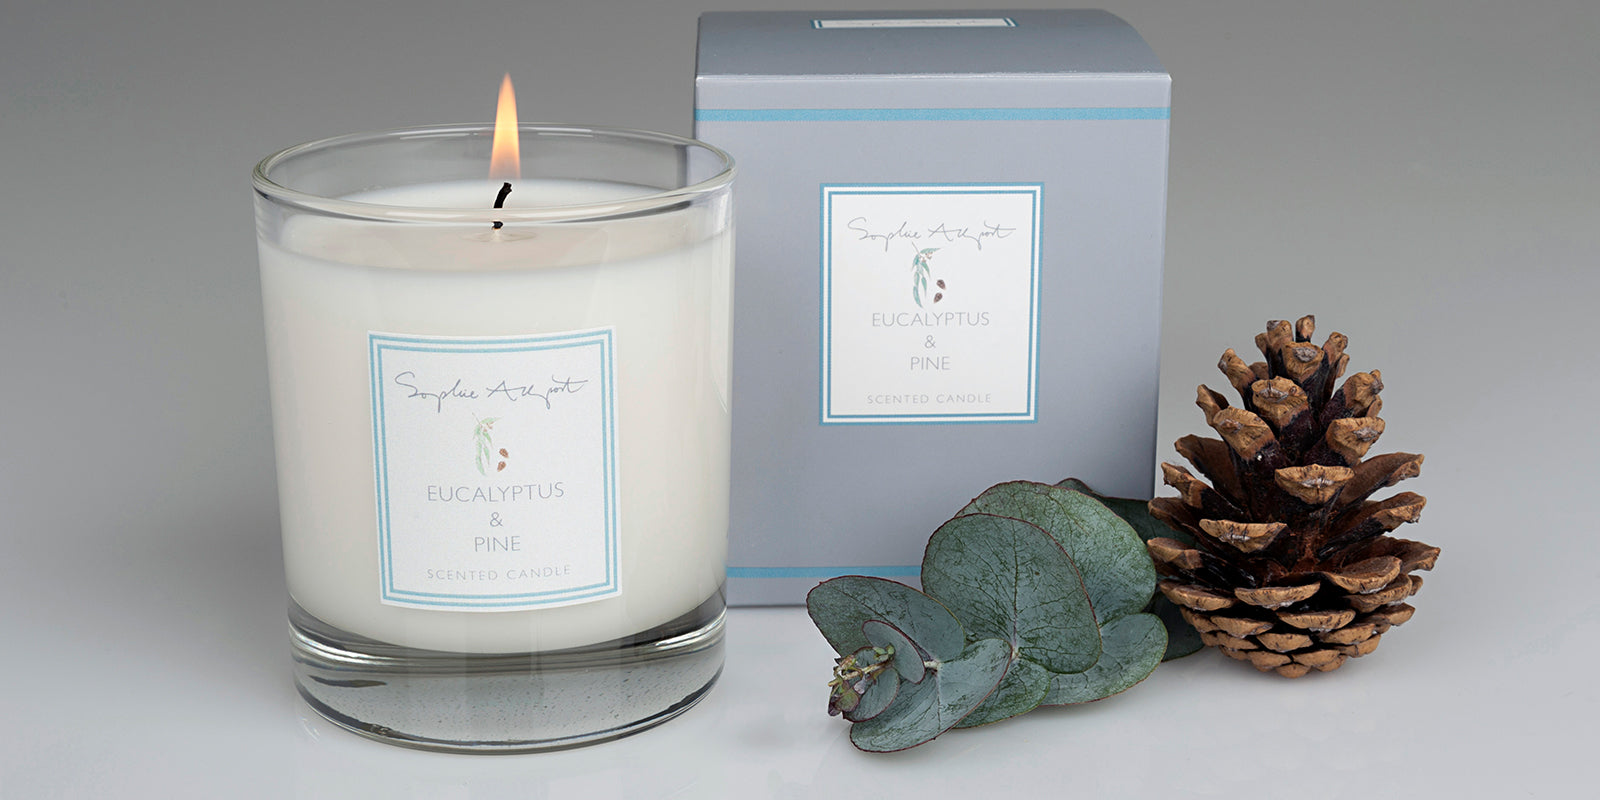 Eucalyptus & Pine Home Scent by Sophie Allport